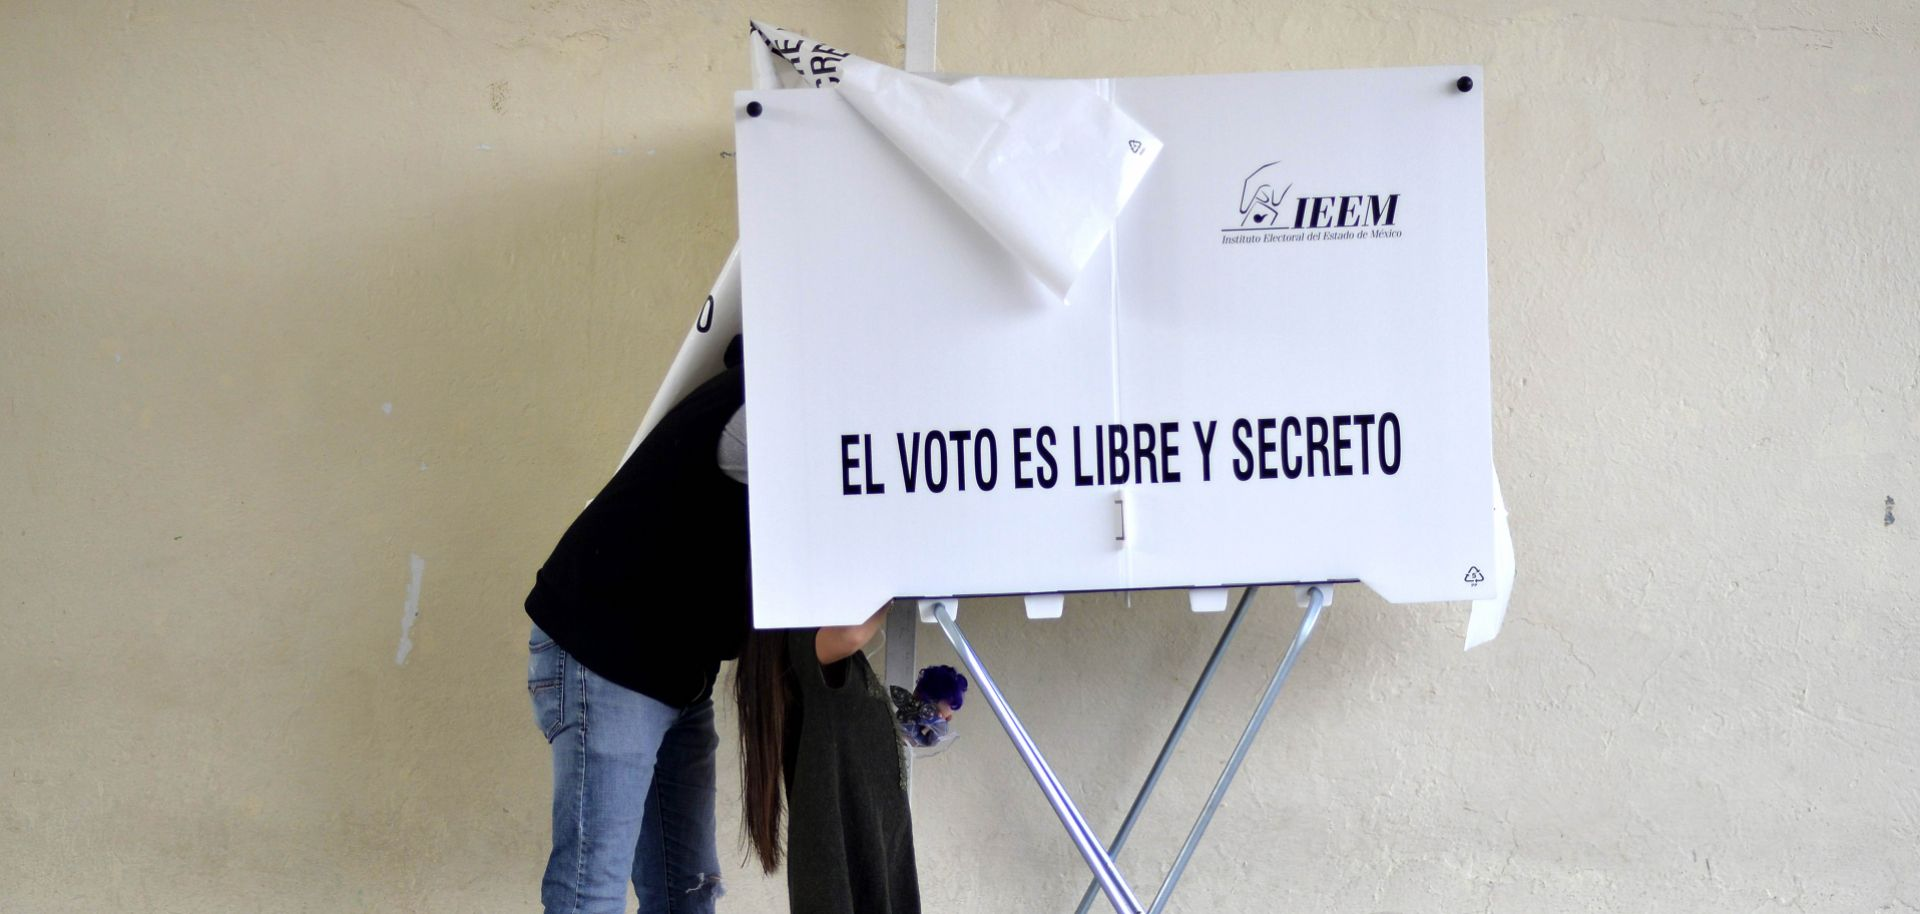 The results of the June 4 gubernatorial election in Mexico state confirmed that the National Regeneration Movement (Morena) is a force to be reckoned with.